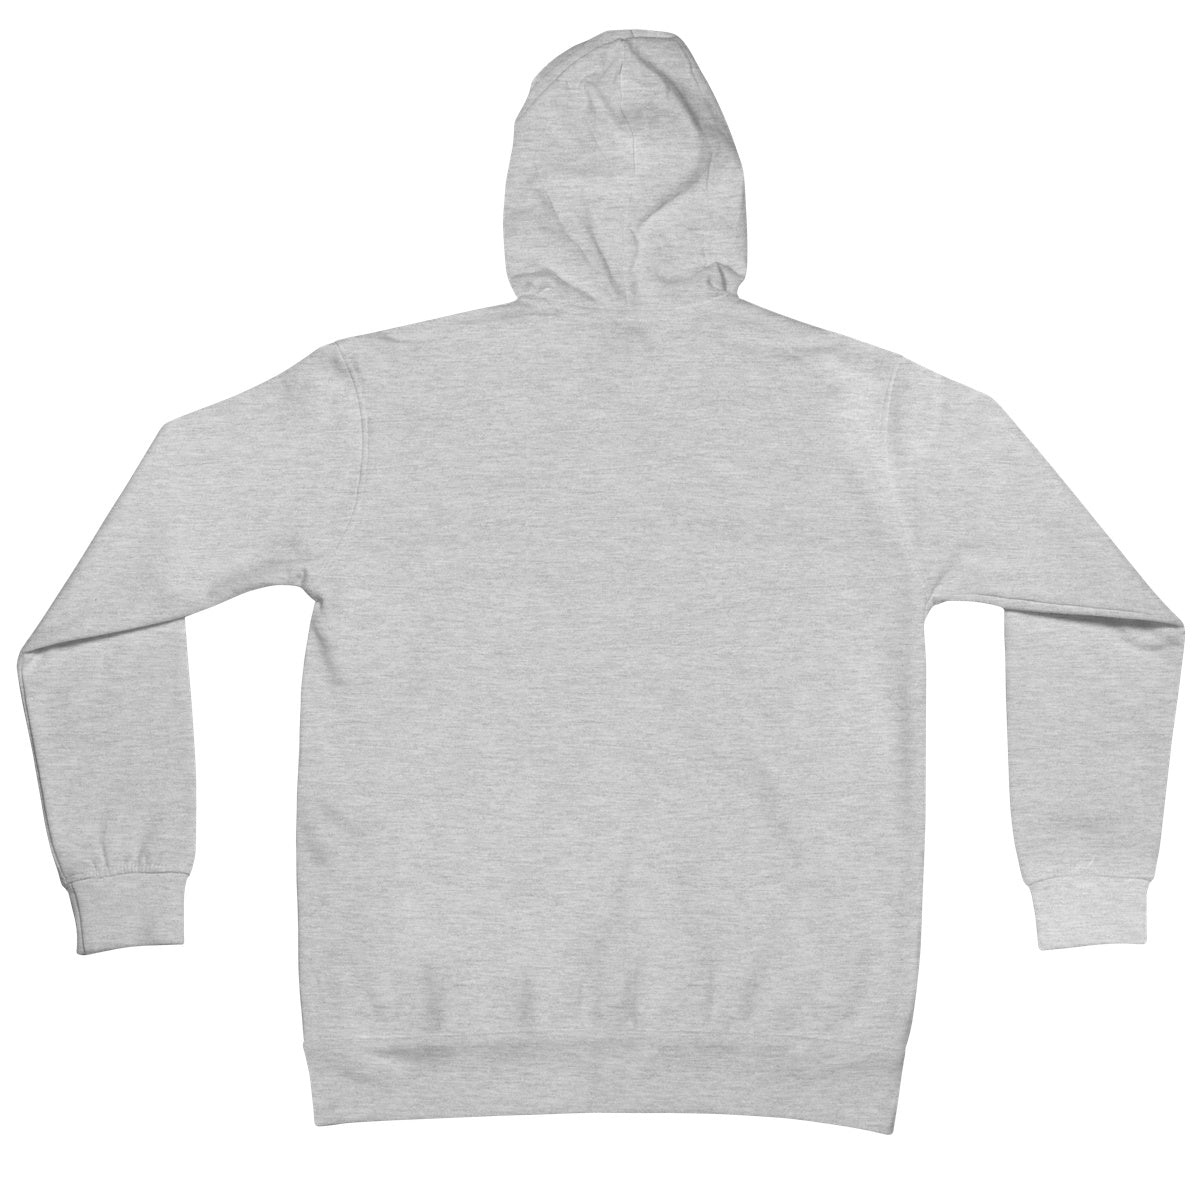 Event Day Retail Hoodie